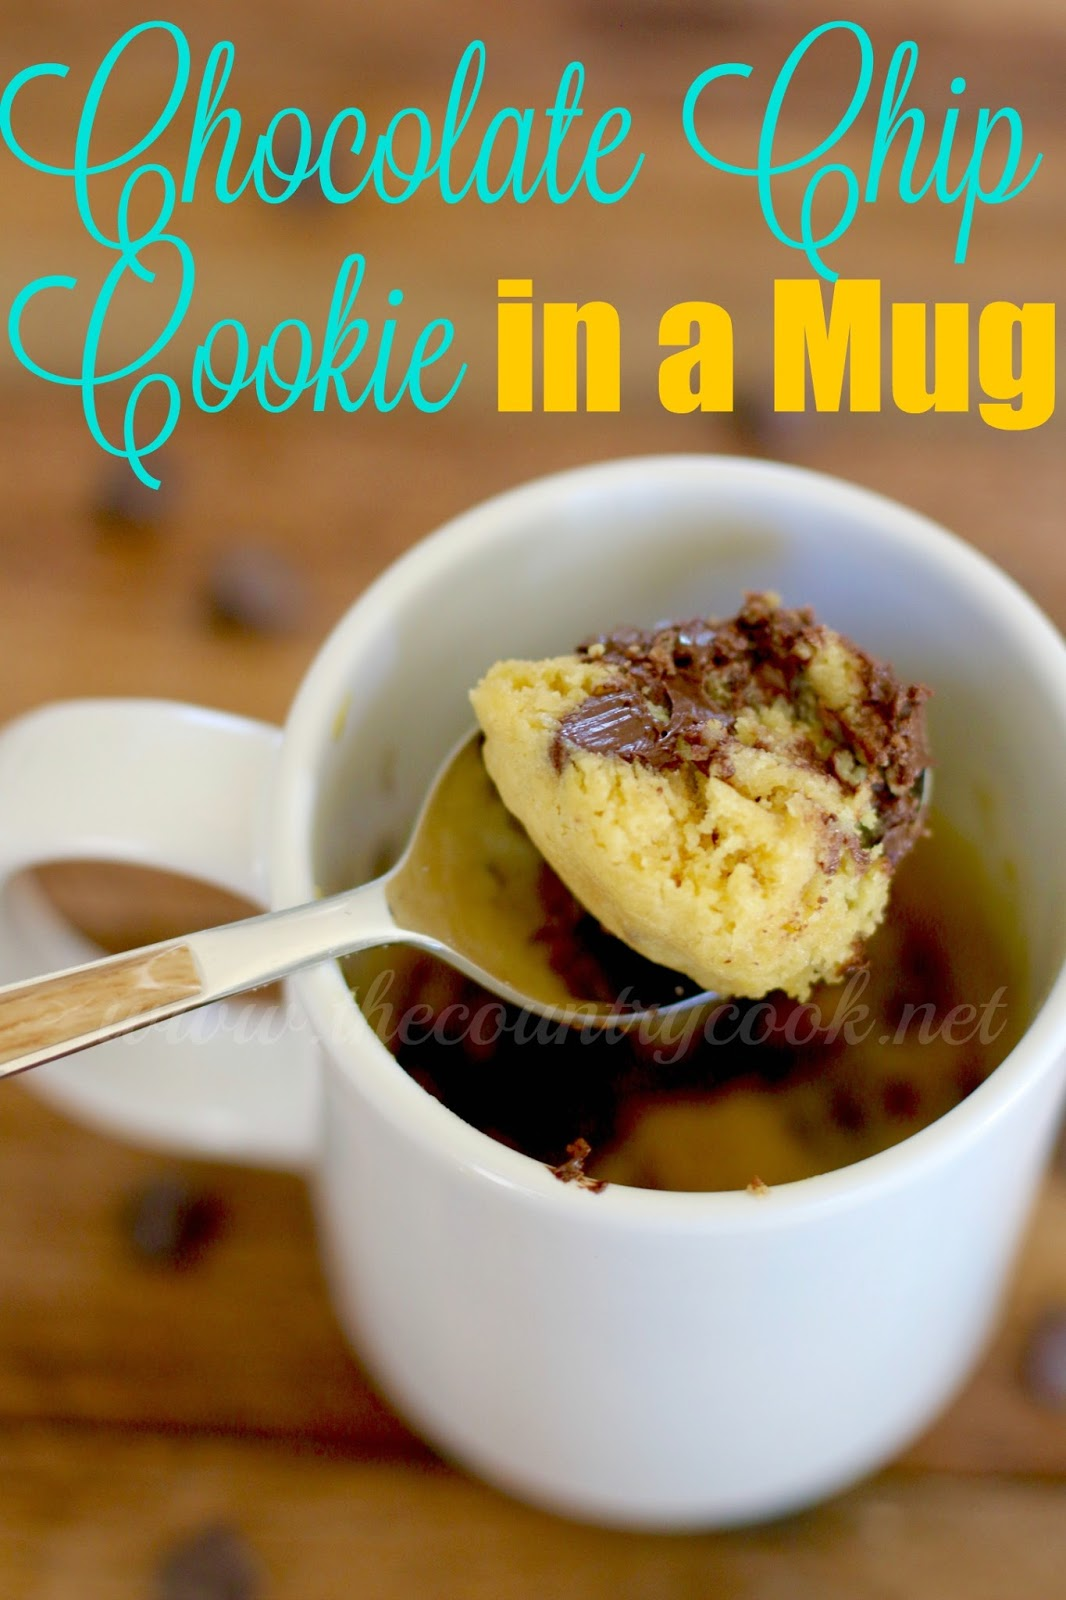 Chocolate Chip Cookie in a Mug - The Country Cook